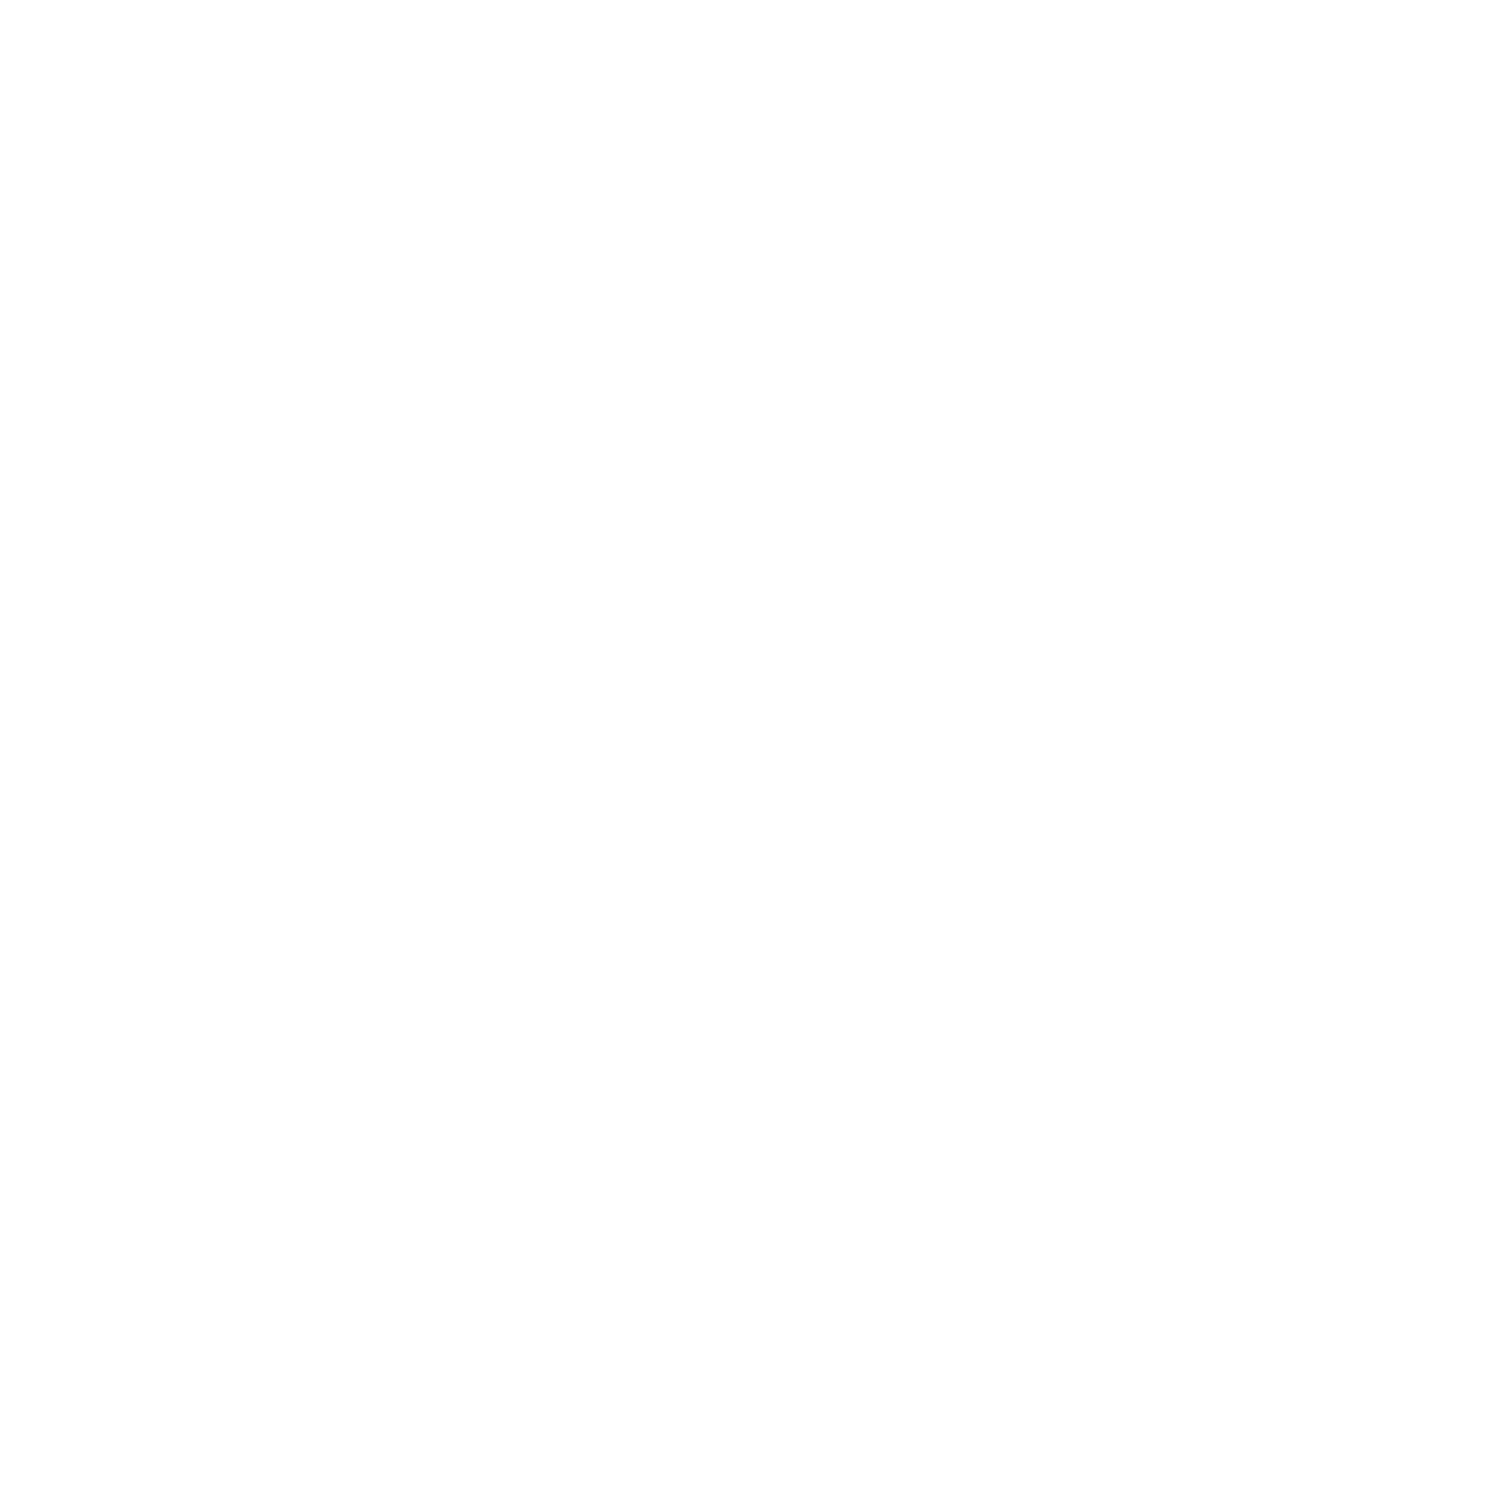 Lead The Kingdom